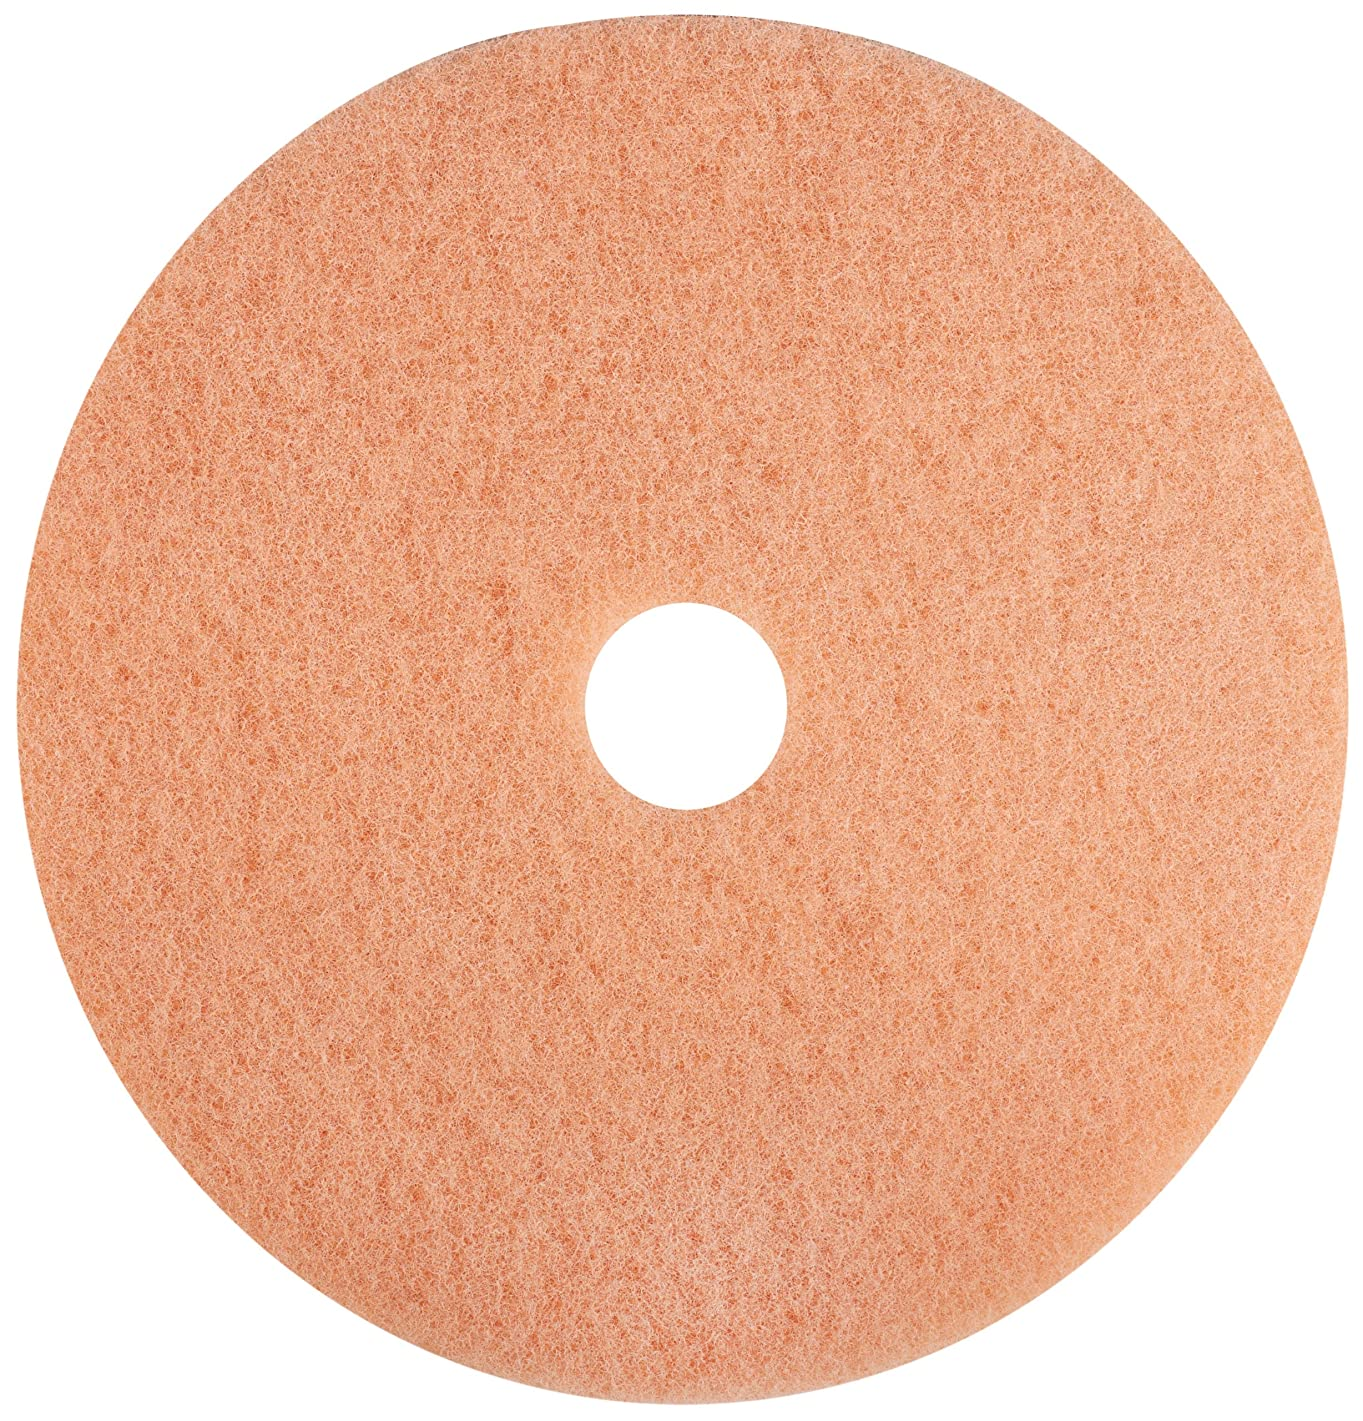 Glit 25524 TK Polyester Blend Coral Pre-Burnishing Pad, Synthetic Blend Resin, Talc Grit, 24